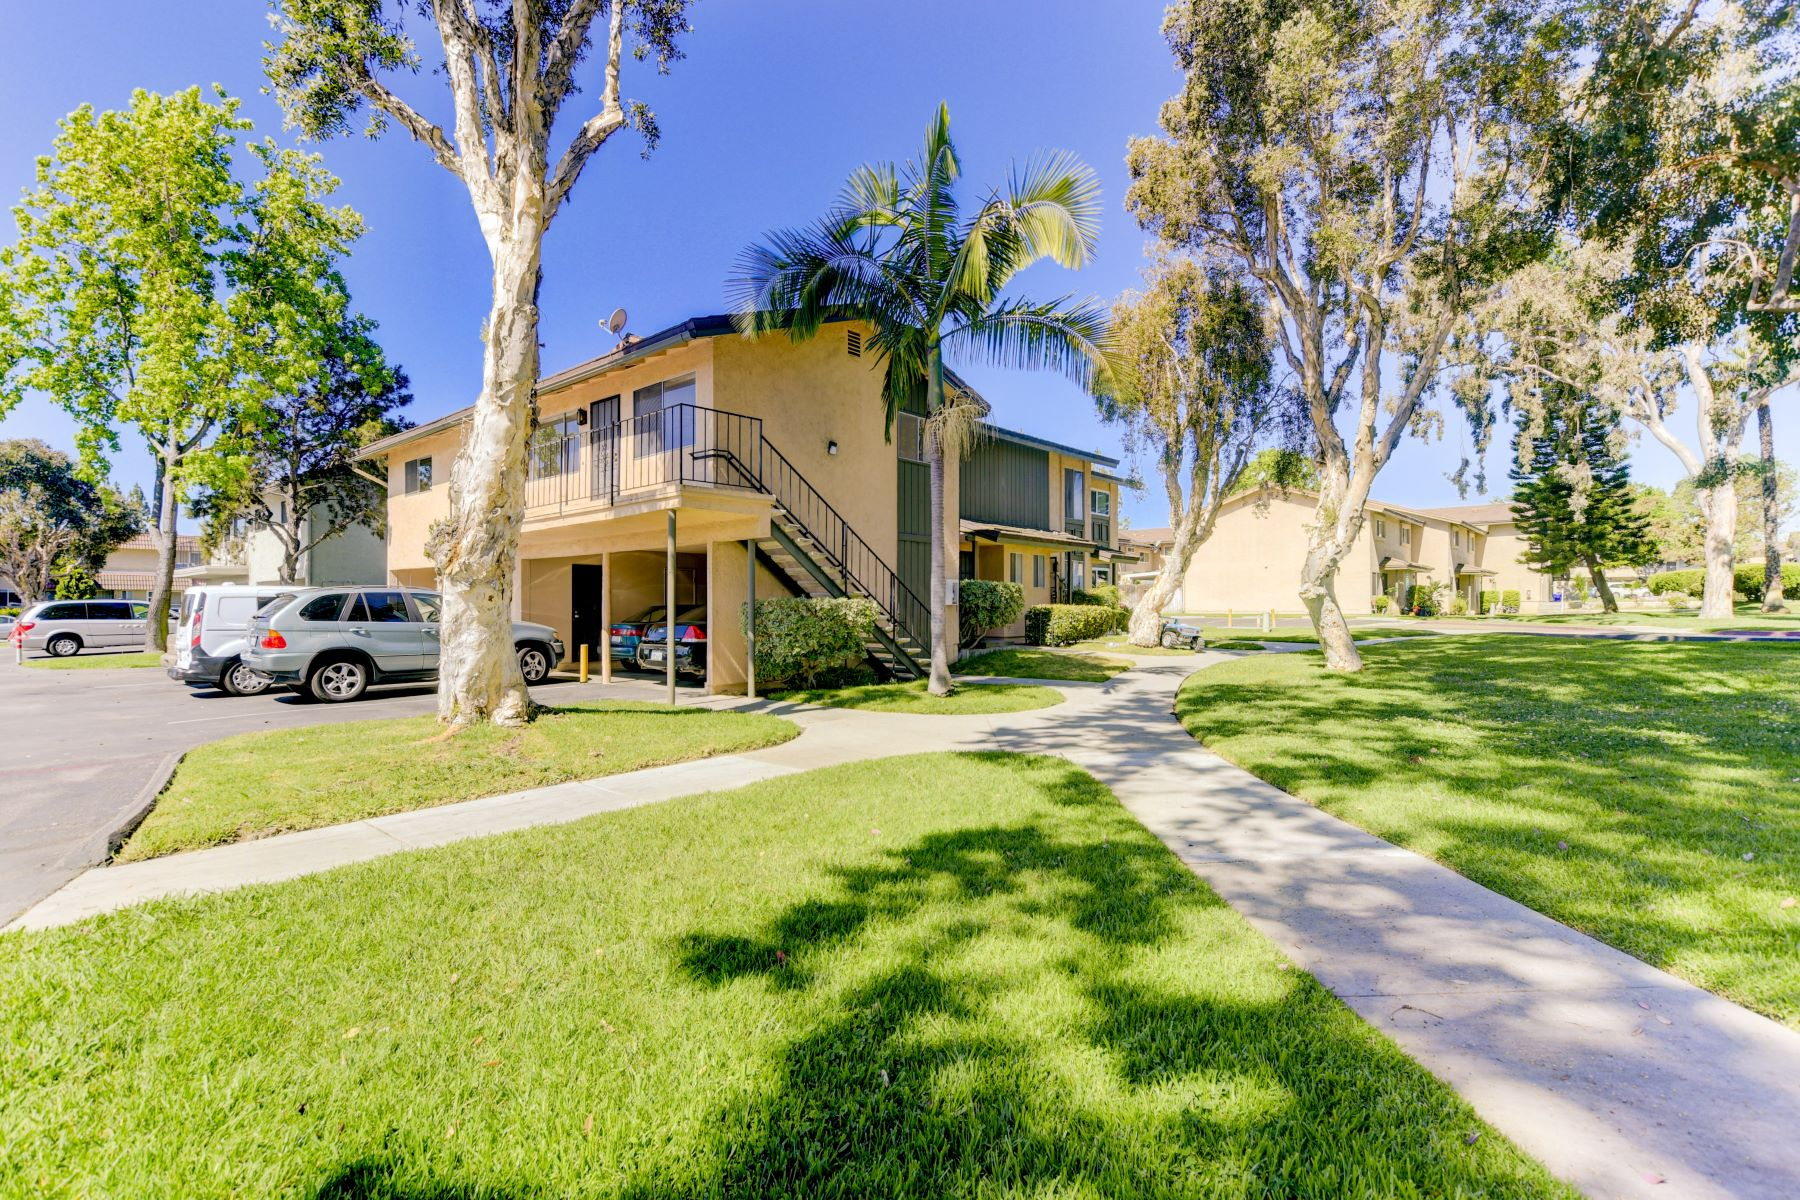 Condominiums for Sale at Desirably Located Condo in San Marcos 1634 Rue De Valle San Marcos, California 92078 United States